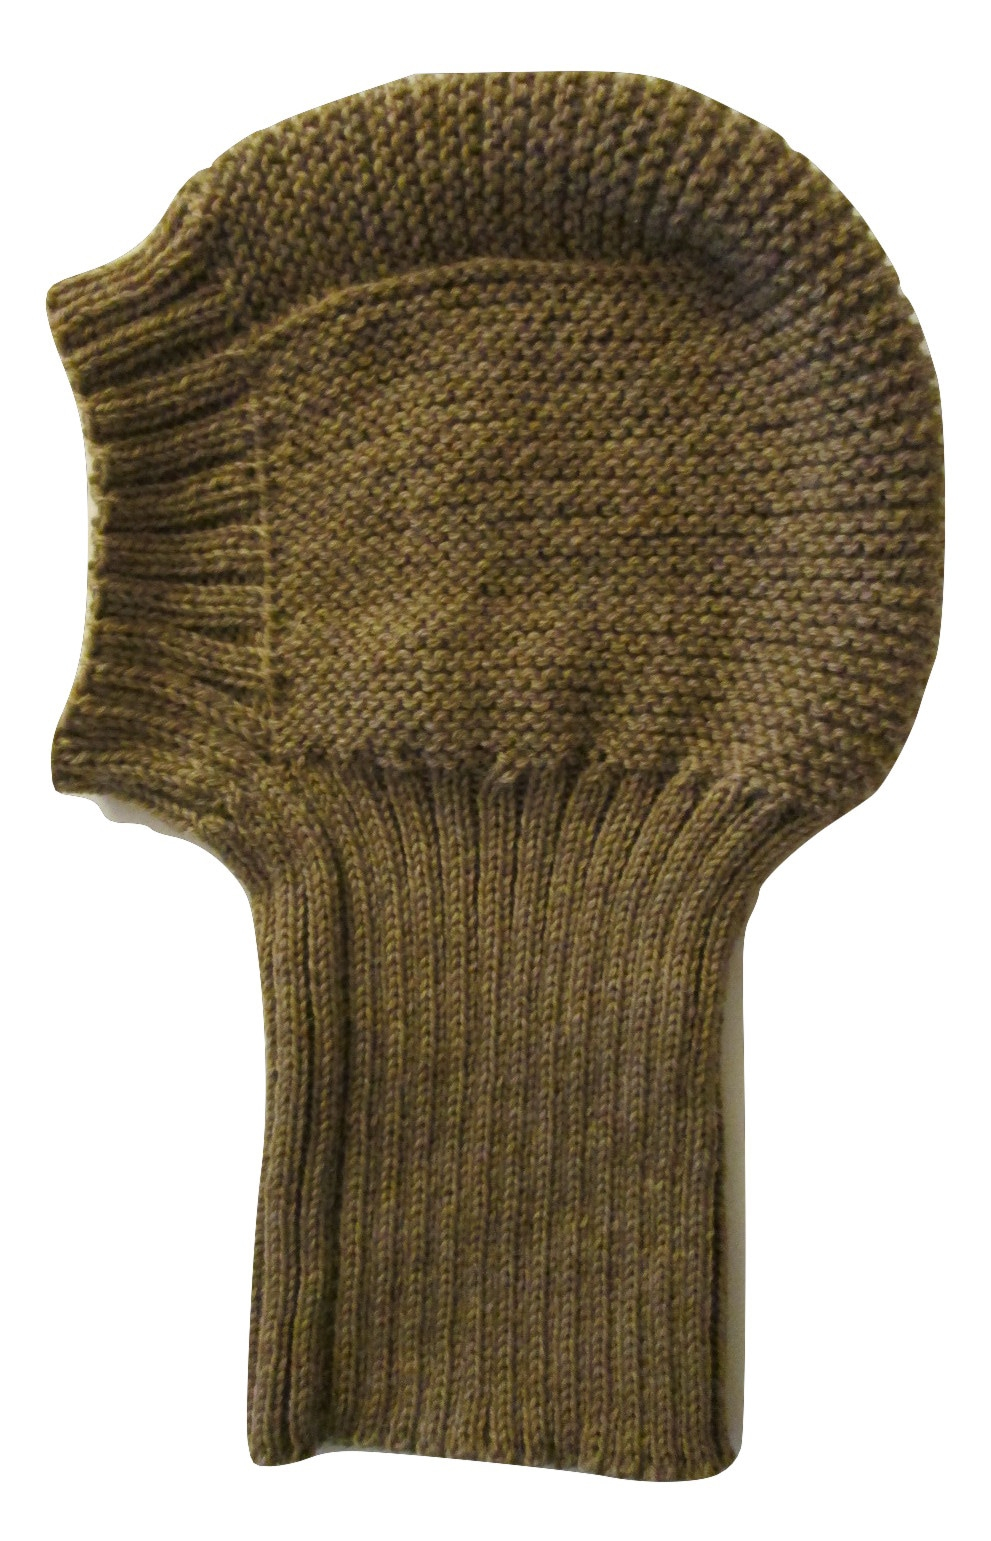 Knitting Pattern Balaclava Great War Knit And Crochet Reproductions For Reenacting And Living